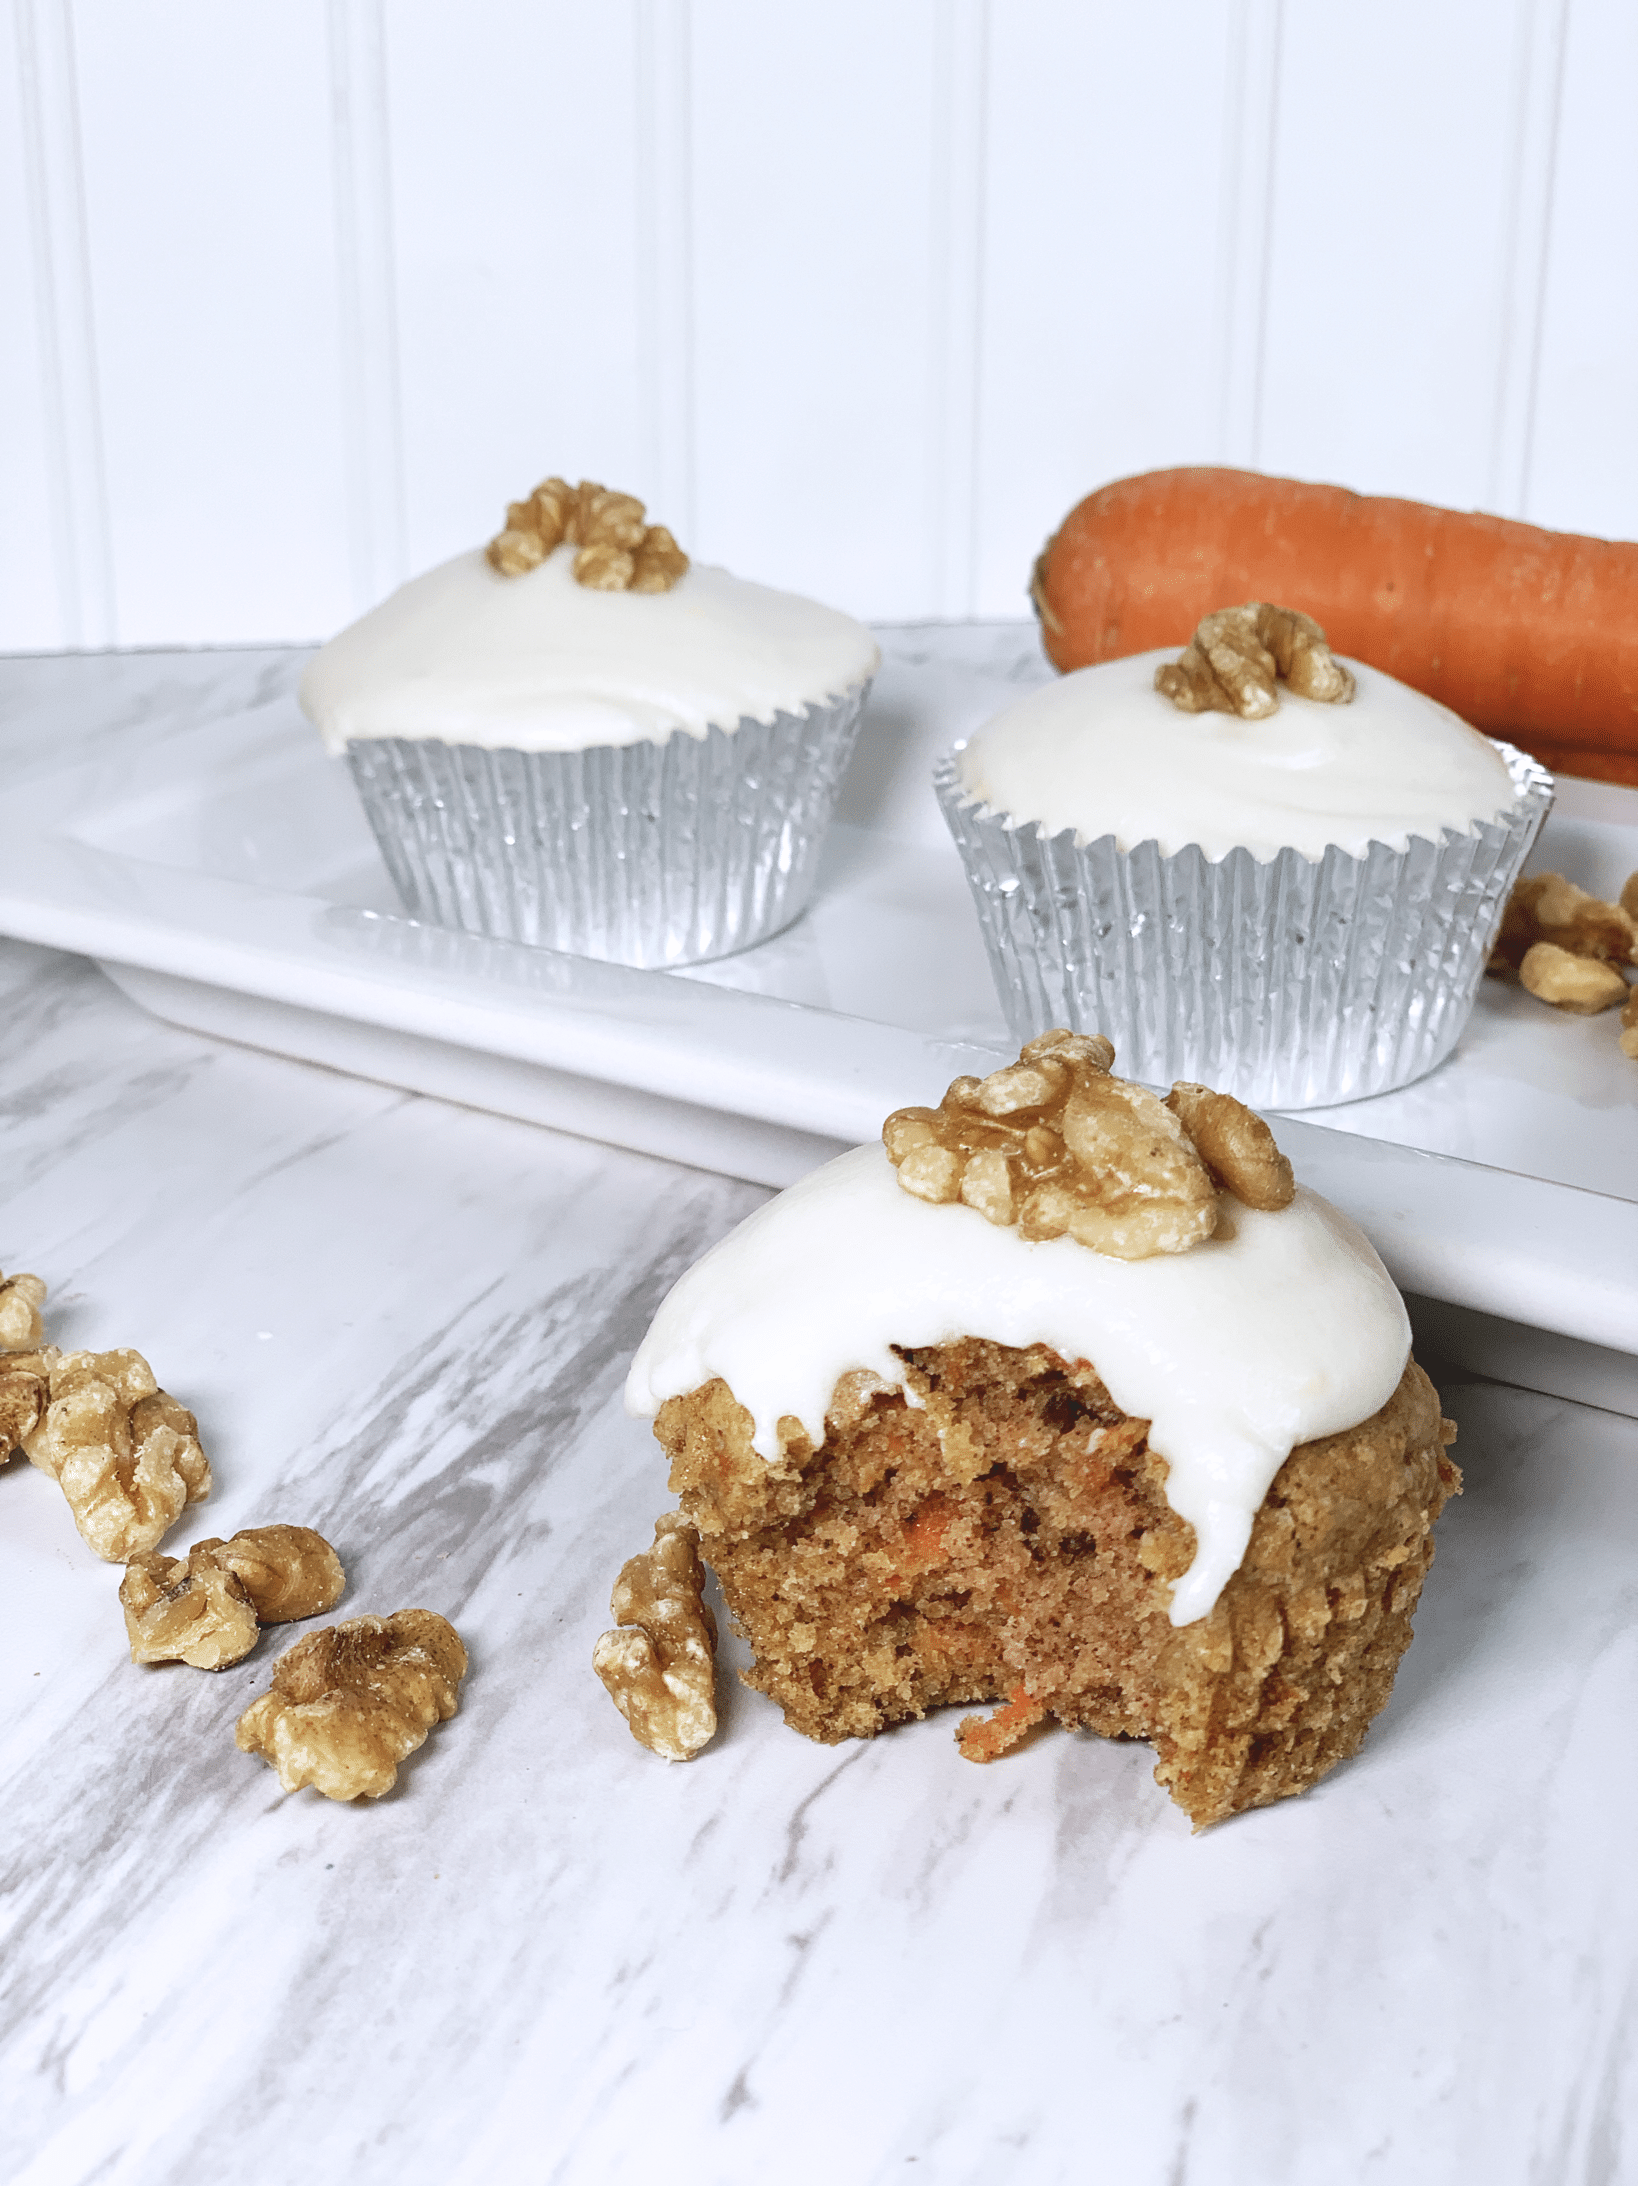 Dairy free cream cheese icing on gf df carrot cake cupcake